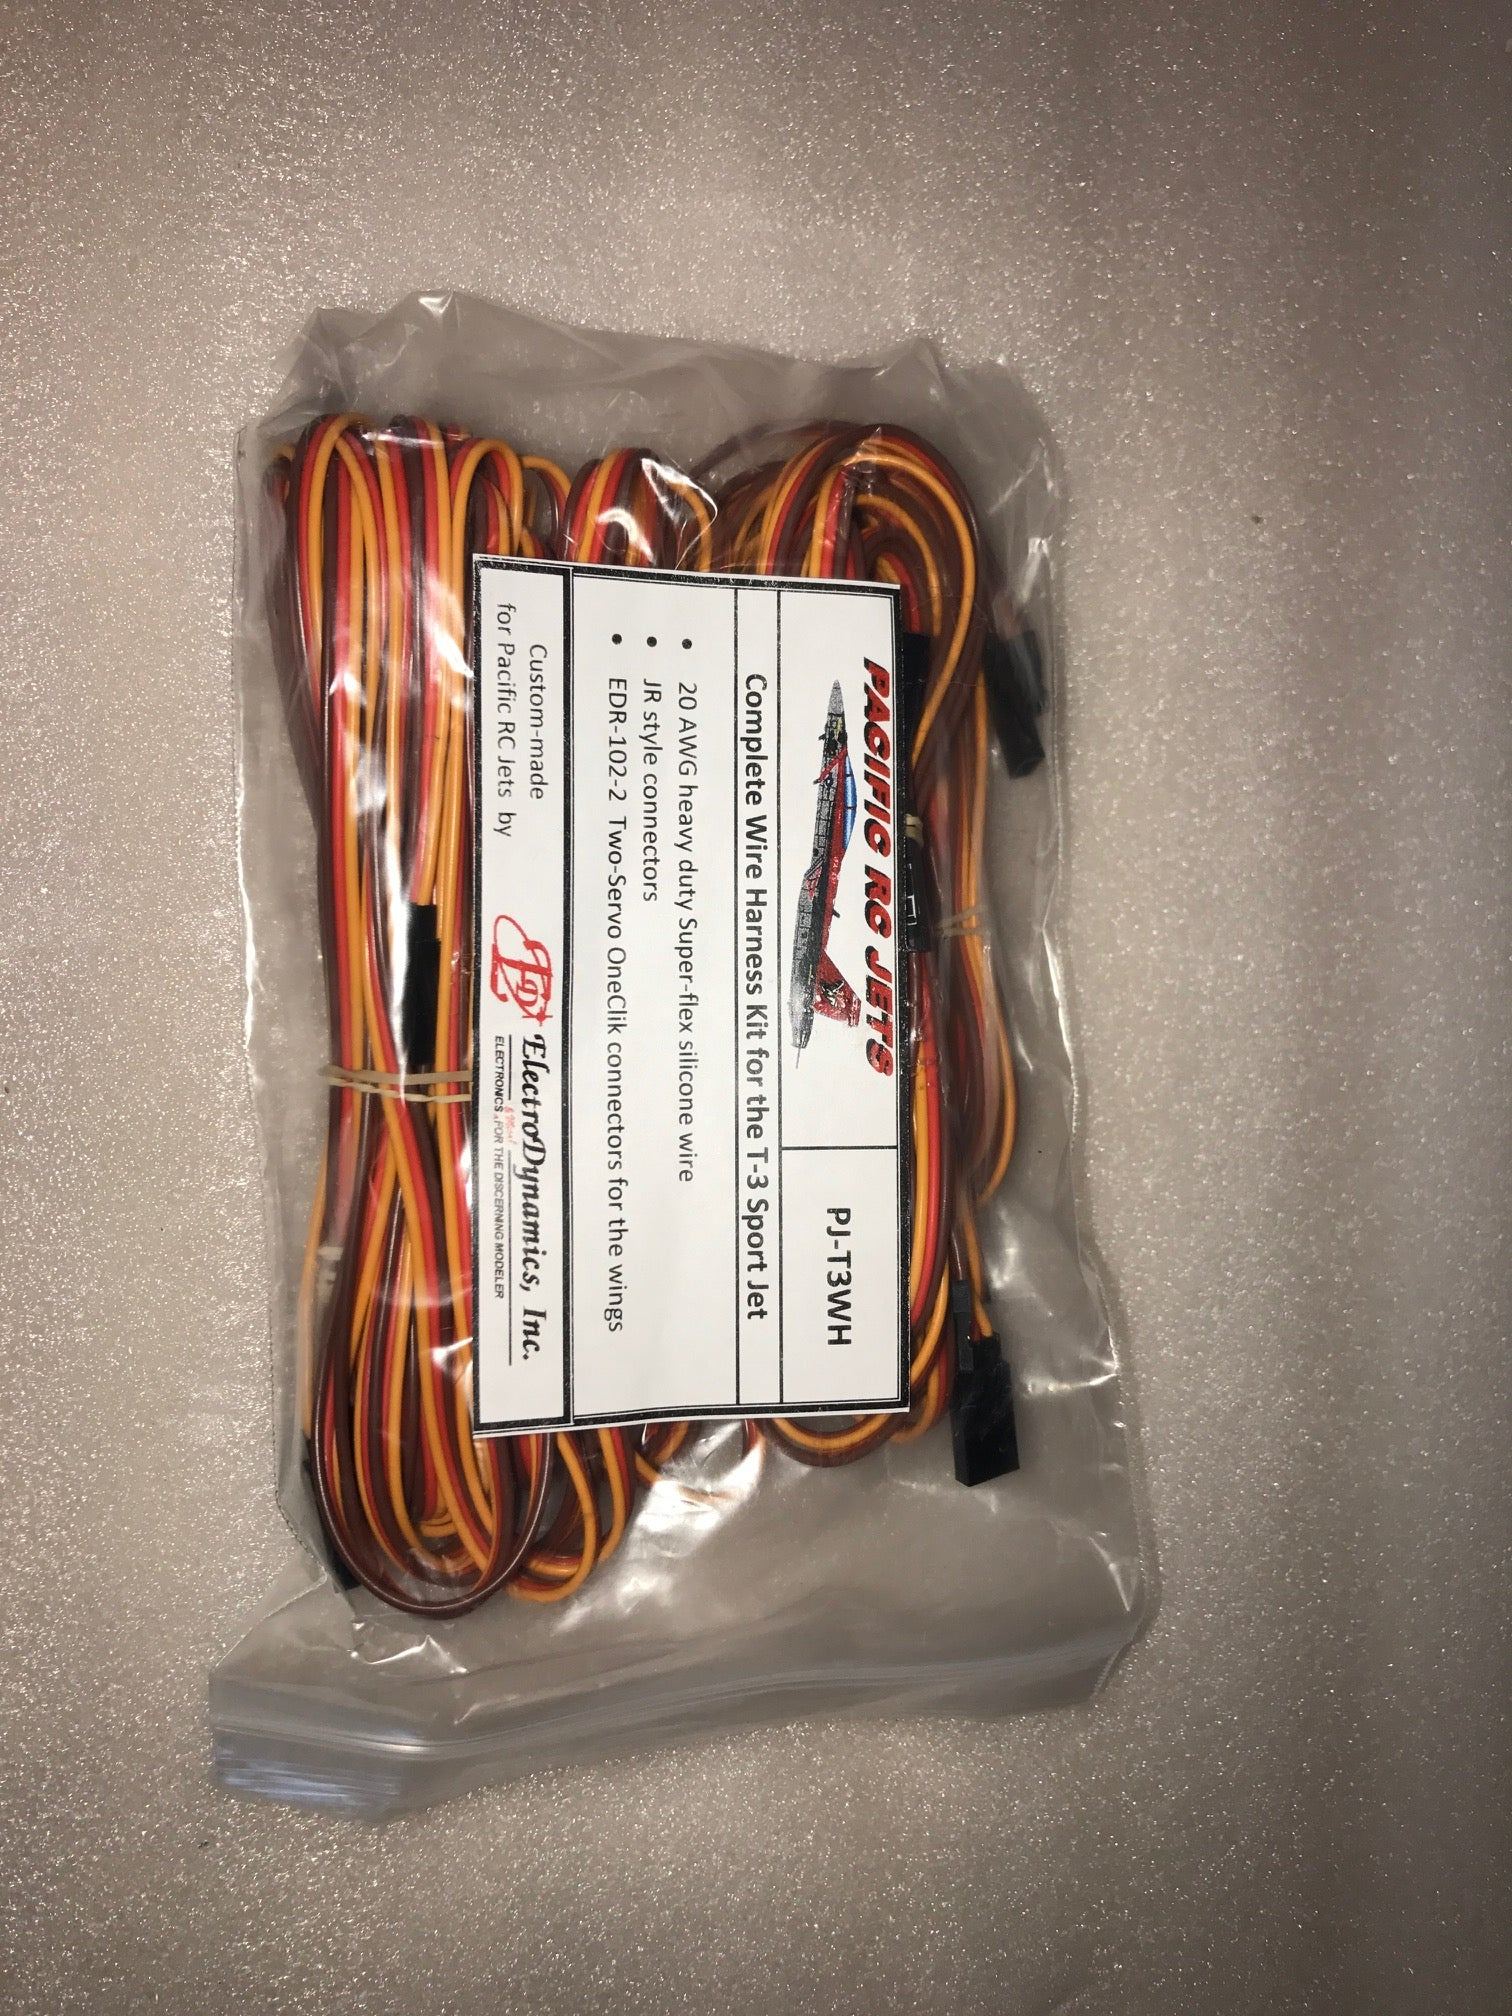 t 3 wire harness kit pacific rc jets rh pacificrcjets com Painless Wiring Harness Kit Hot Rod Wiring Harness Kits